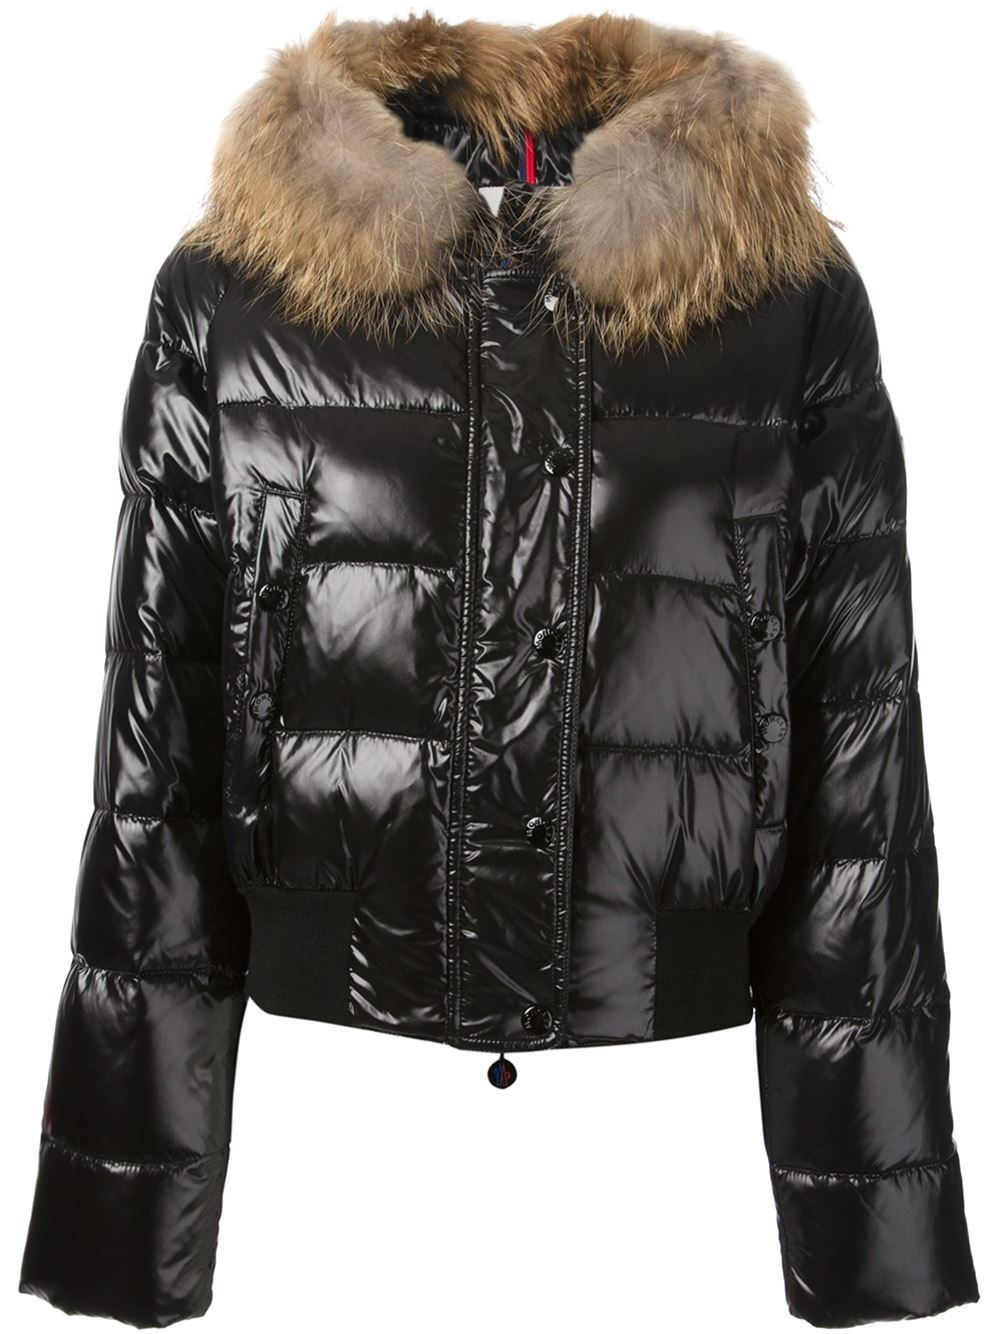 Moncler 'Alpin' padded jacket